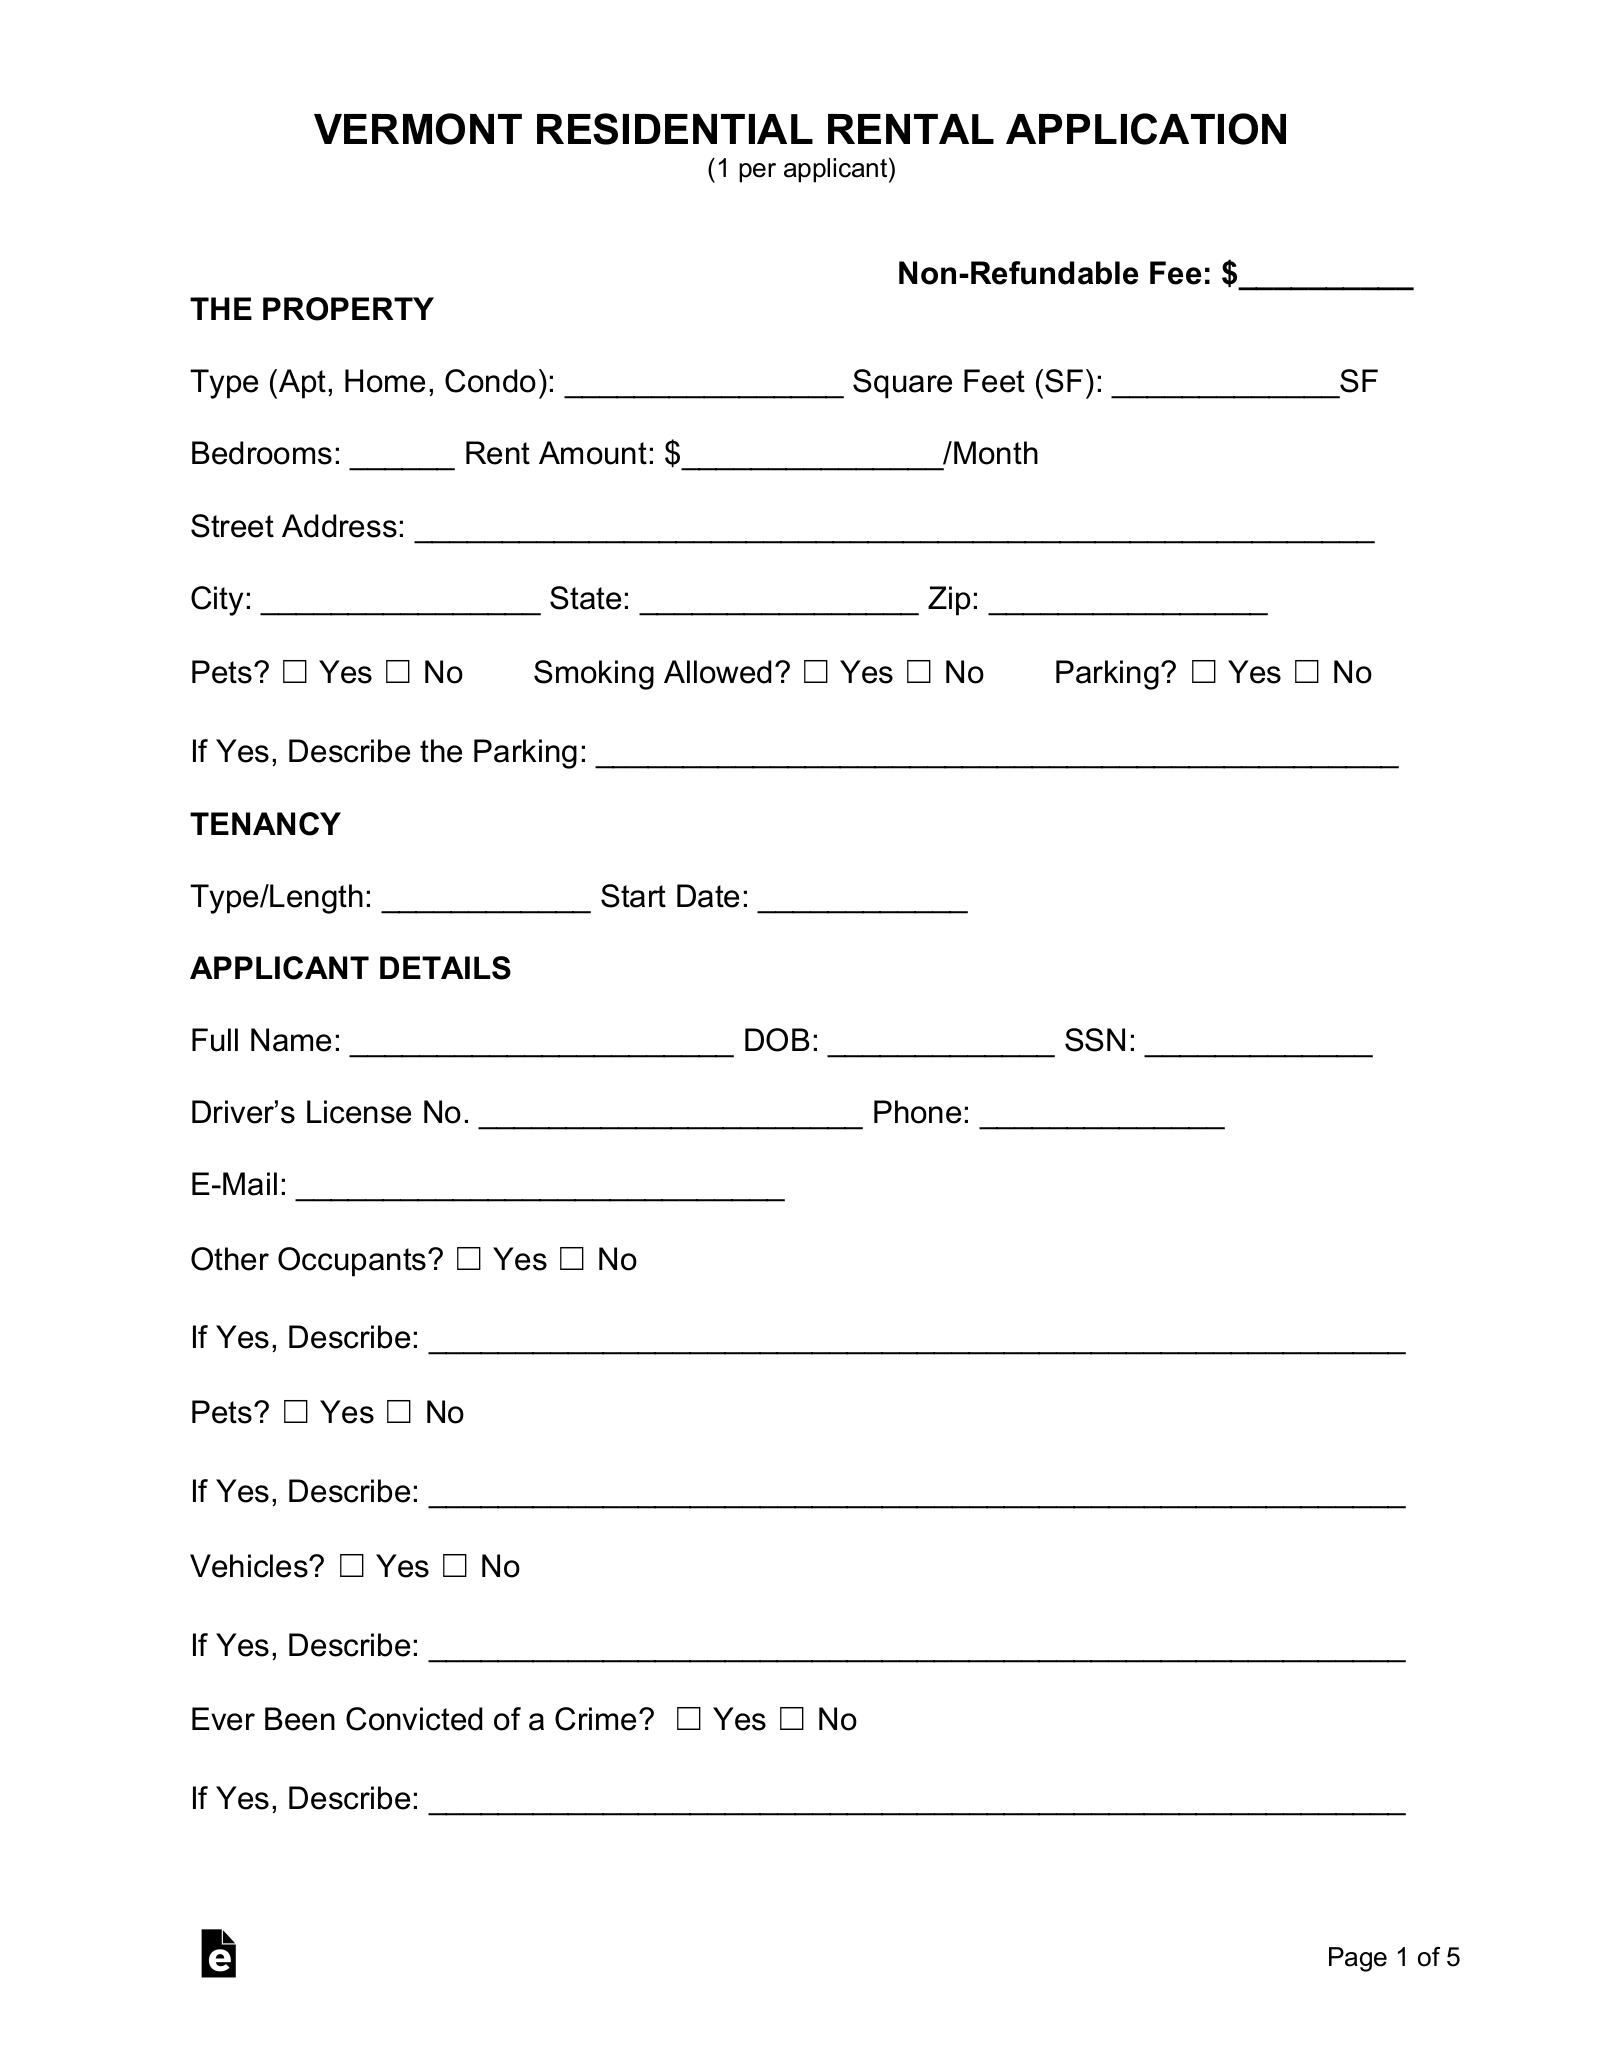 vermont-rental-application-form Vermont Apartment Application Form on contact us form, dog-walking contract form, apartment insurance, apartment rental apps, apartment rental agreement, new employee checklist form, apartment contract, apartment work order forms, apartment brochure, apartment checklist, apartment lease, apartment background, apartment applications blank templates, proof of address form, proof of residency form,